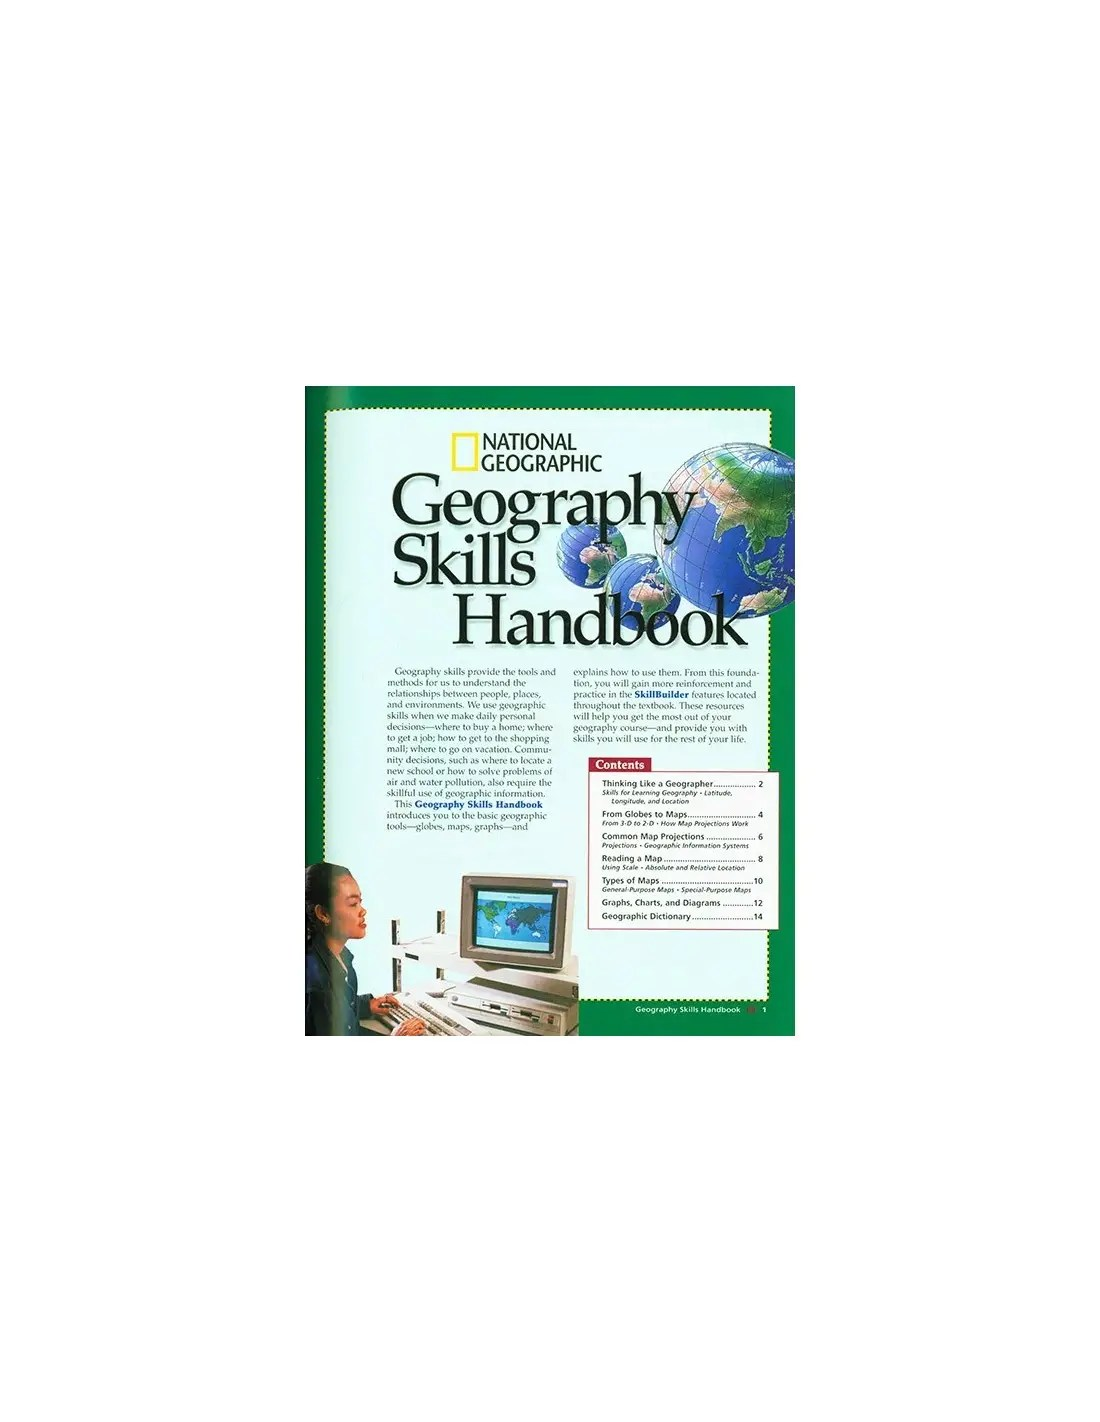 World Geography Textbook Ed Used